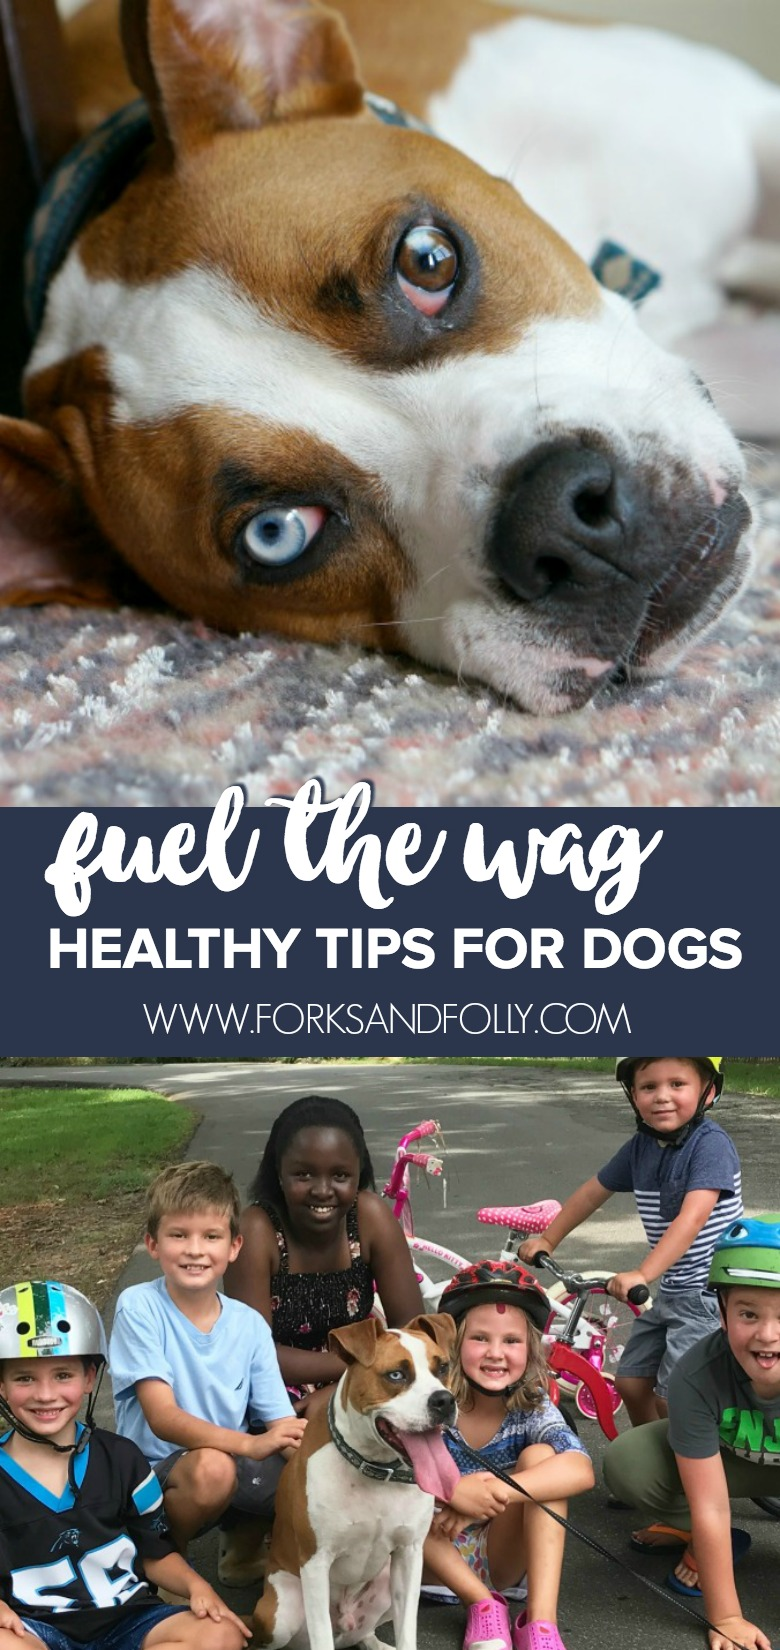 Just because he's the most laid back, doesn't mean he shouldn't get the best!  Here are some great ways to fuel the wag and prioritize the healthy tips for your dog!